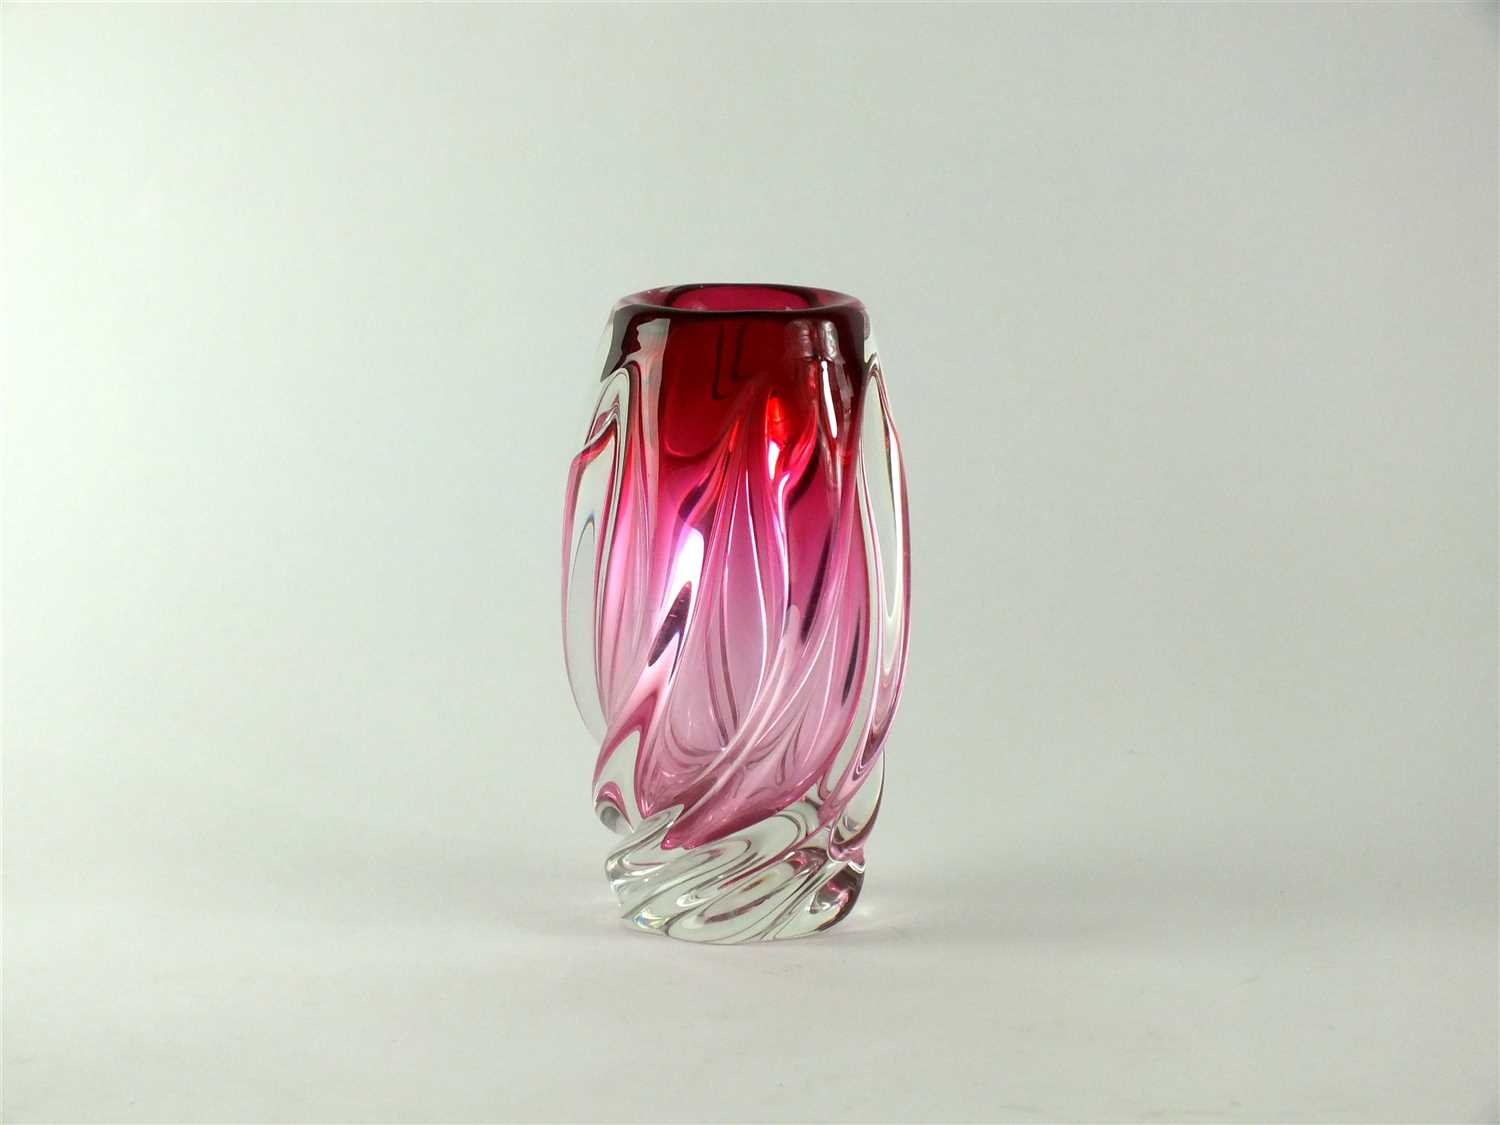 Lot 143-A Val St. Lambert glass vase